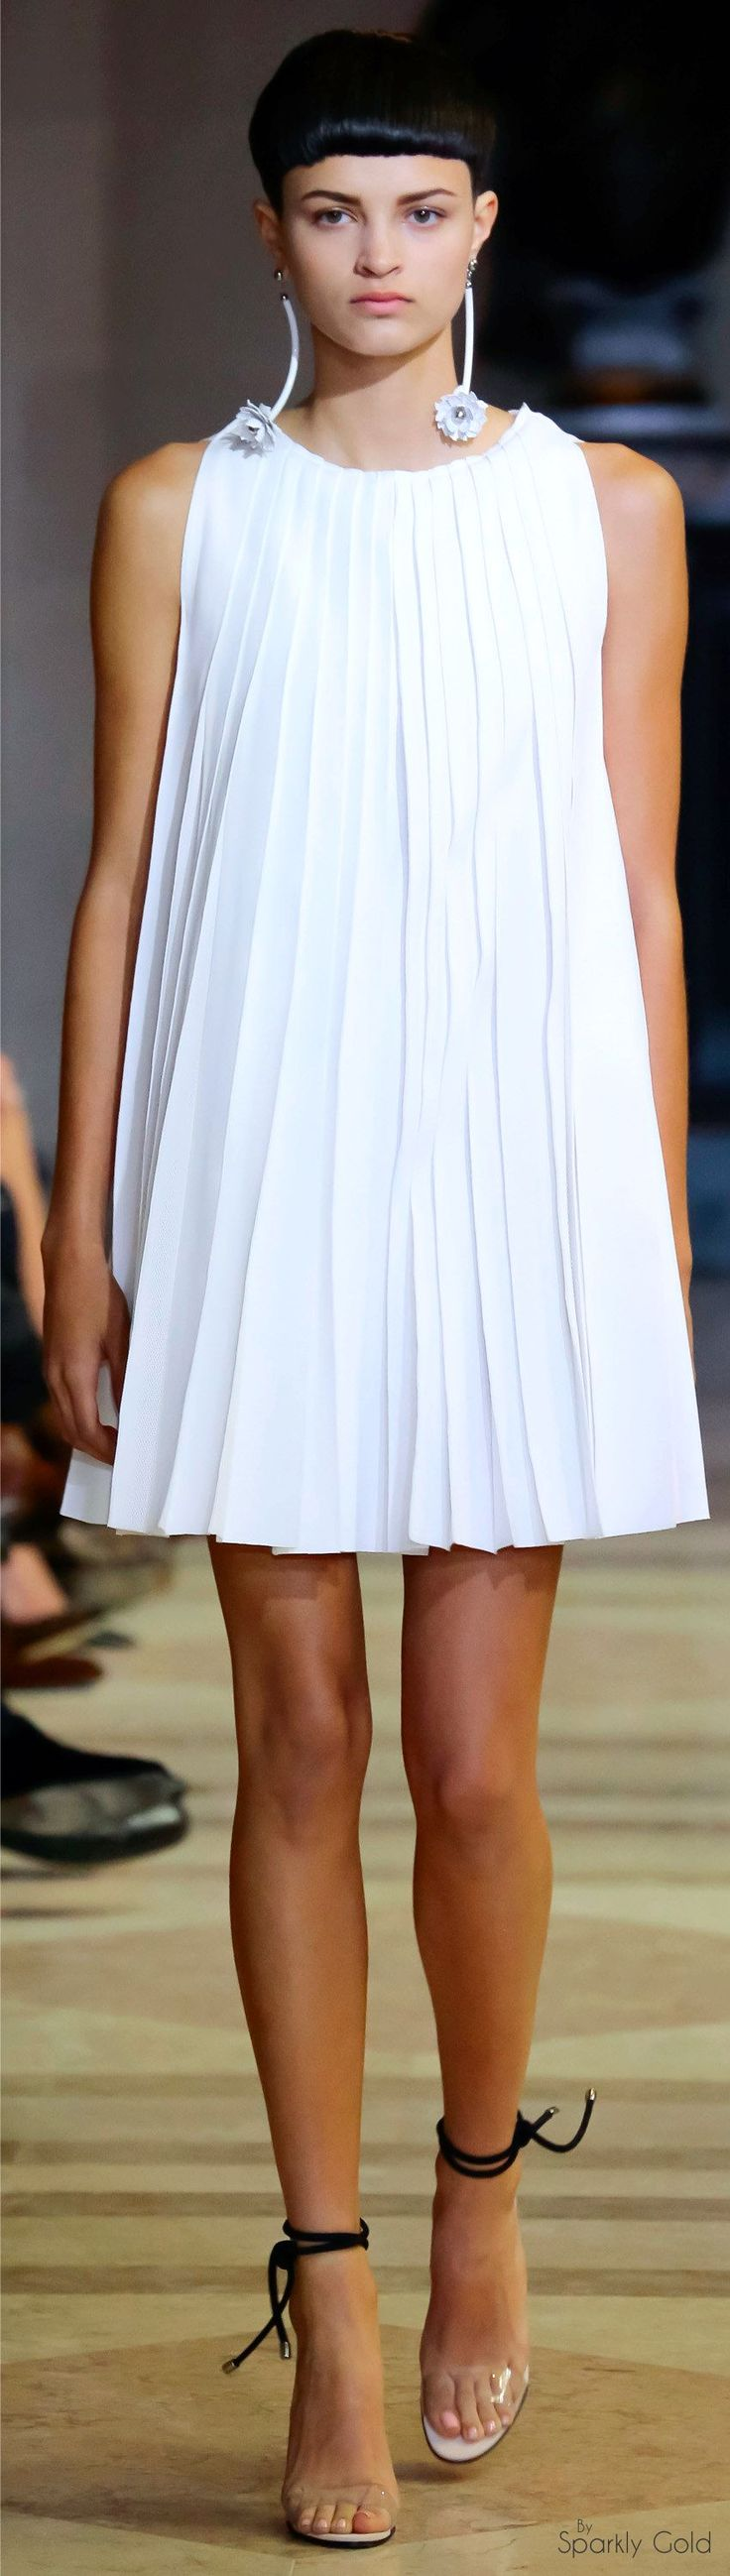 Carolina Herrera Spring 2016 - I had a dress like this back in 1985.  Now here it is again 30 years later. Should have held onto it!